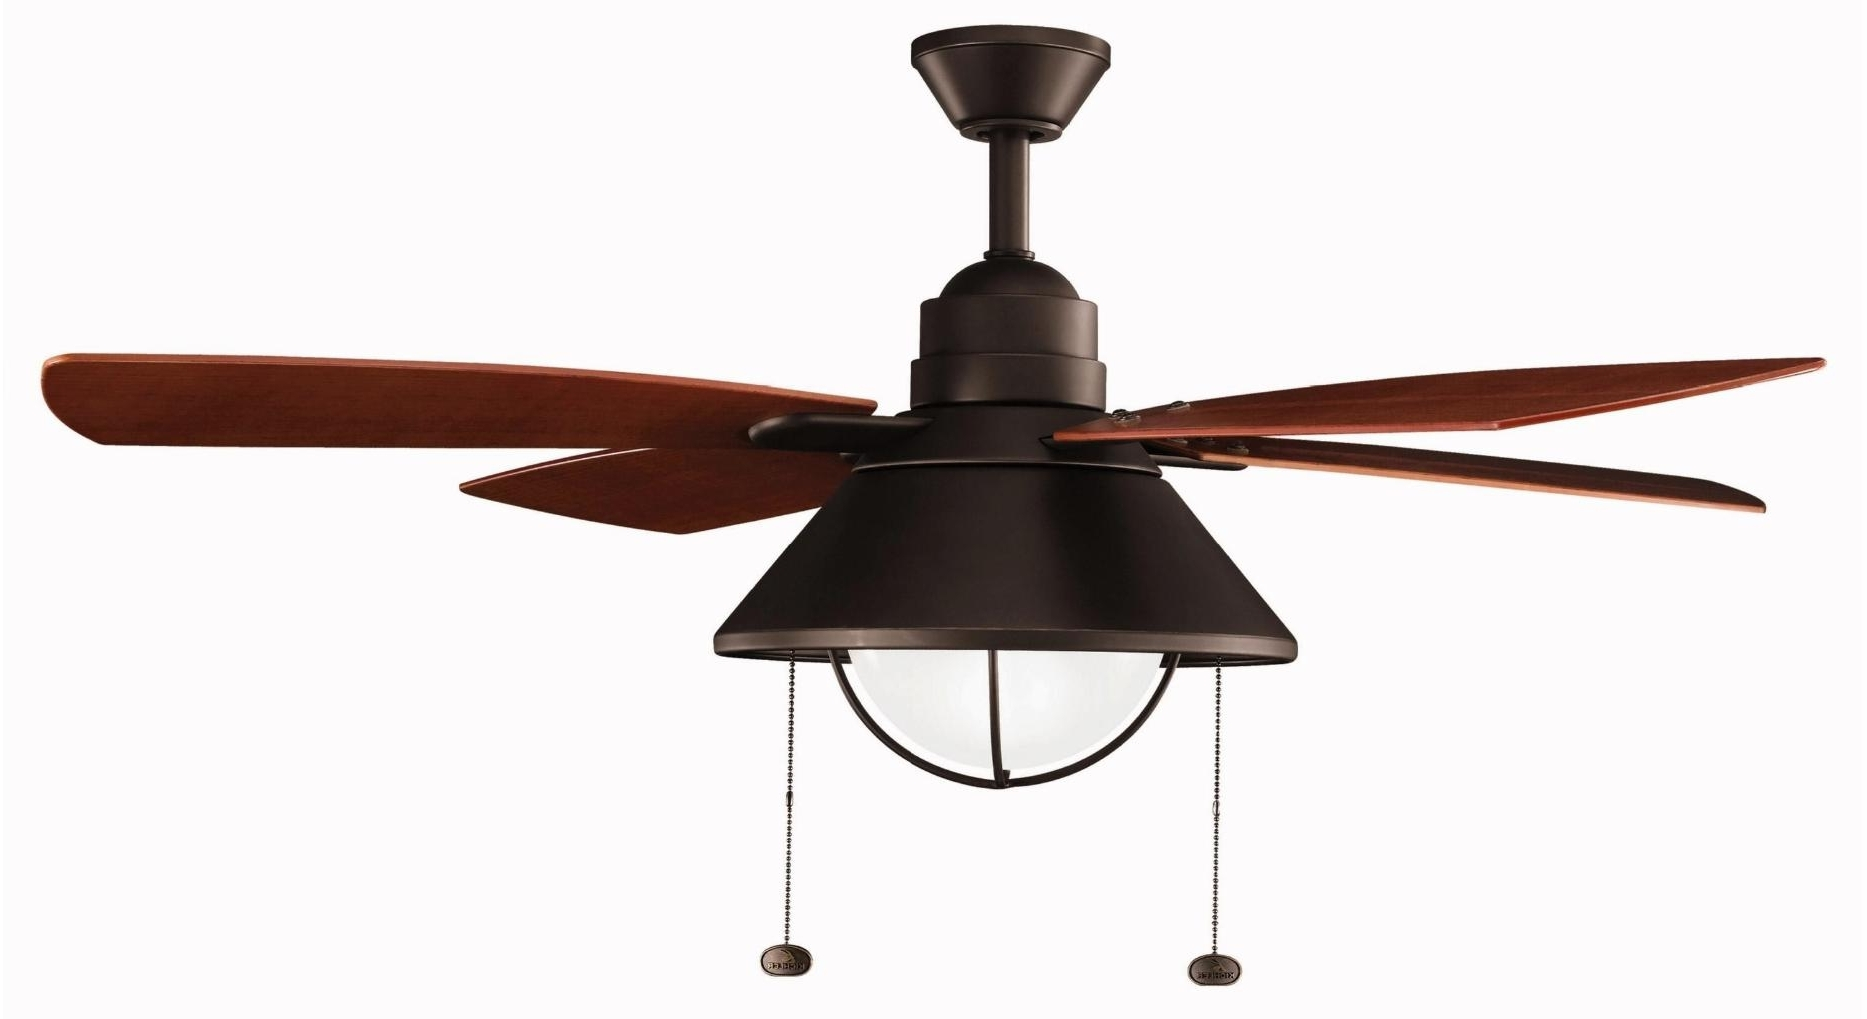 Hugger Outdoor Ceiling Fans With Lights Throughout Latest Decor: Living Hugger Ceiling Fans Trendy Outdoor Ceiling Fans With (View 16 of 20)